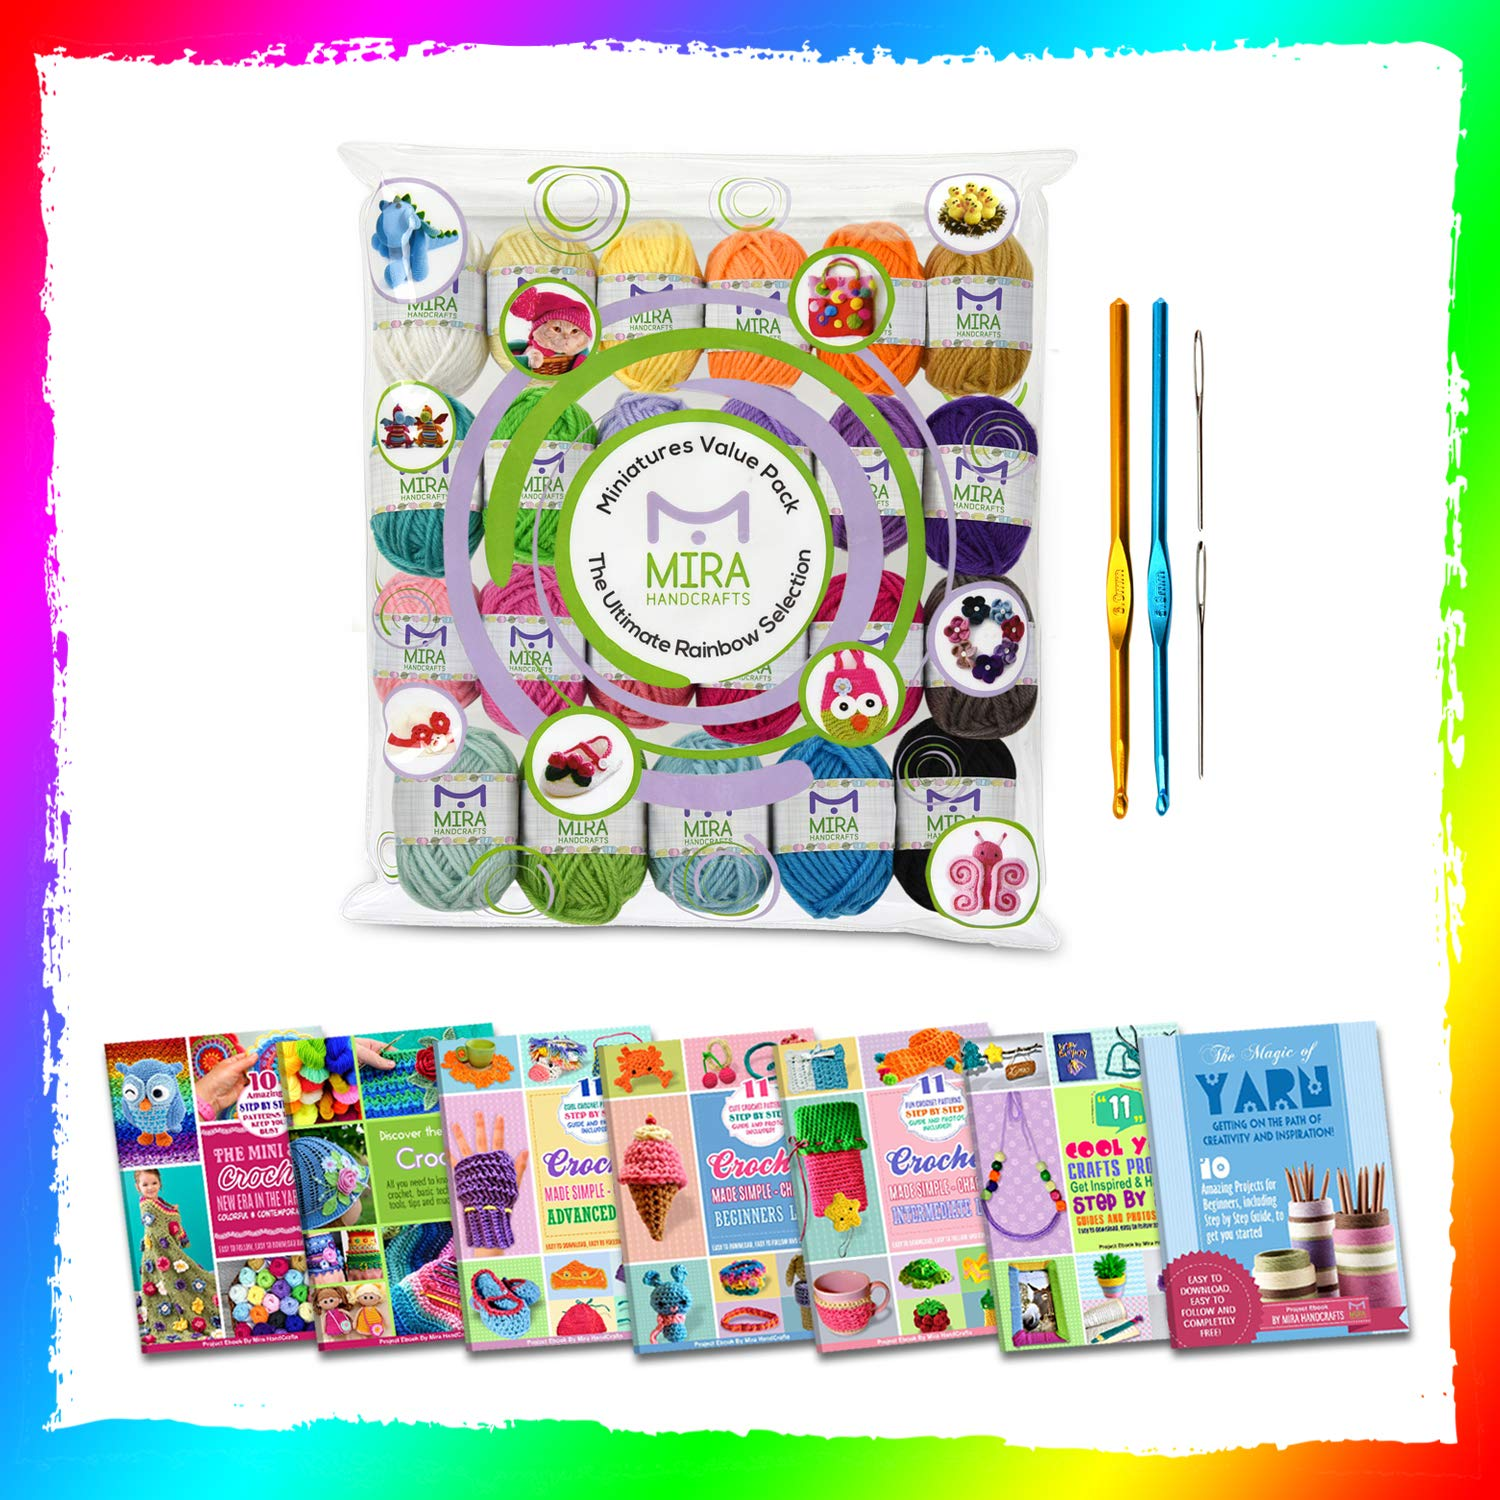 Mira Handcrafts 24 Acrylic Yarn Bonbons | Total of 525 Yards Craft Yarn for Knitting and Crochet | Includes 2 Crochet Hooks, 2 Weaving Needles, 7 E-Books | DK Yarn | Perfect Beginner Kit by Mira HandCrafts (Image #4)